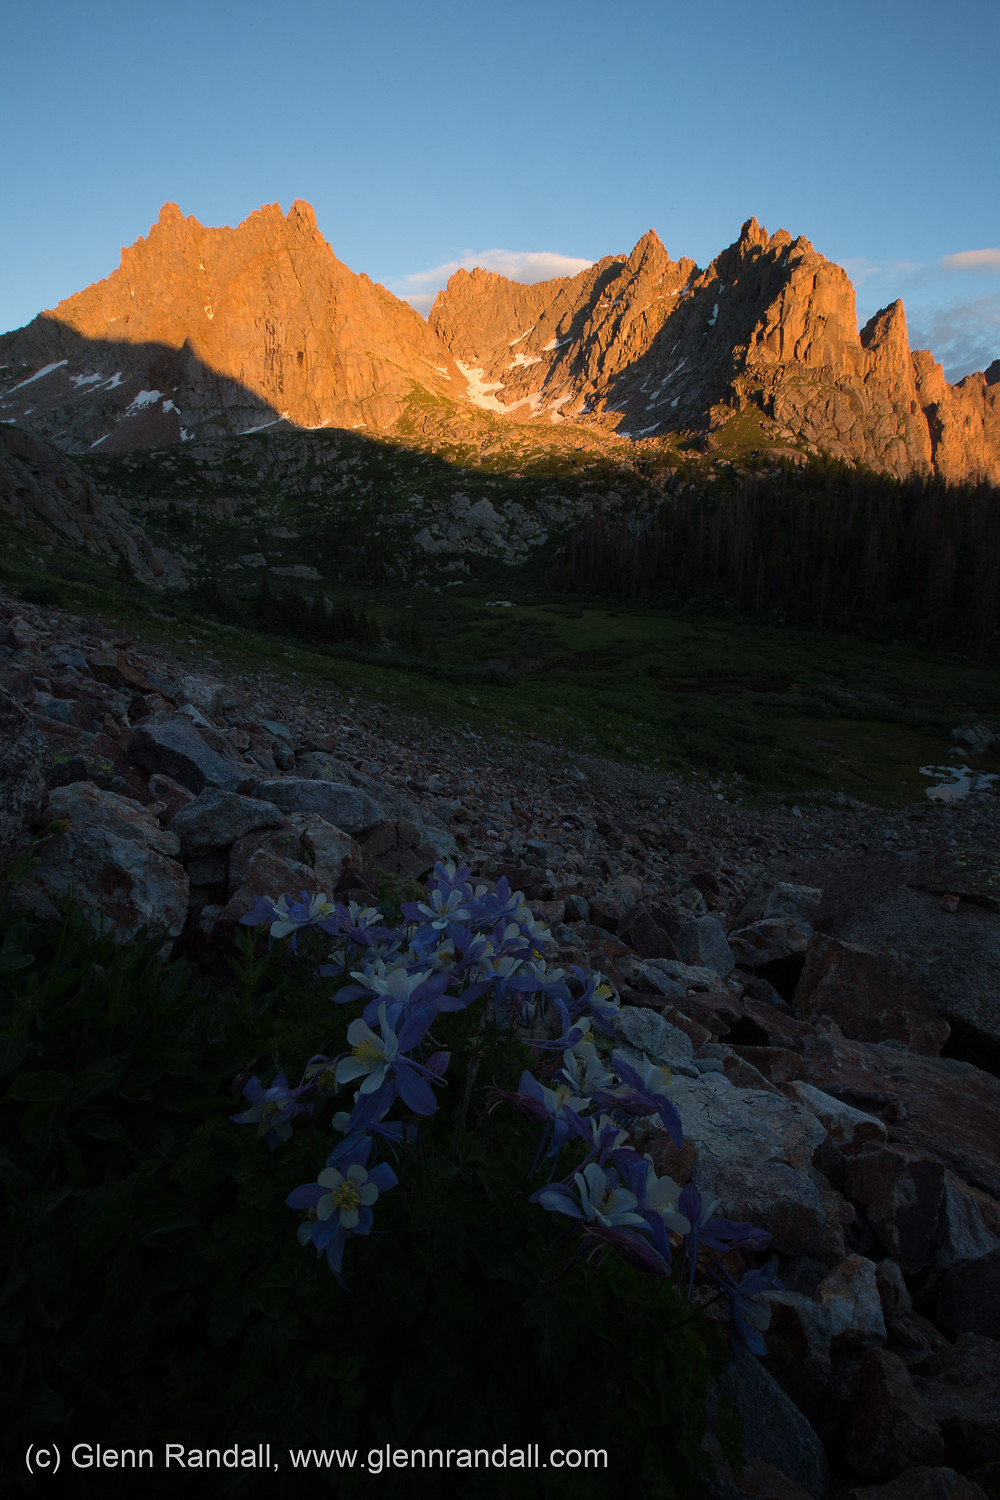 Jagged Mountain and columbine at sunset, Weminuche Wilderness, Colorado